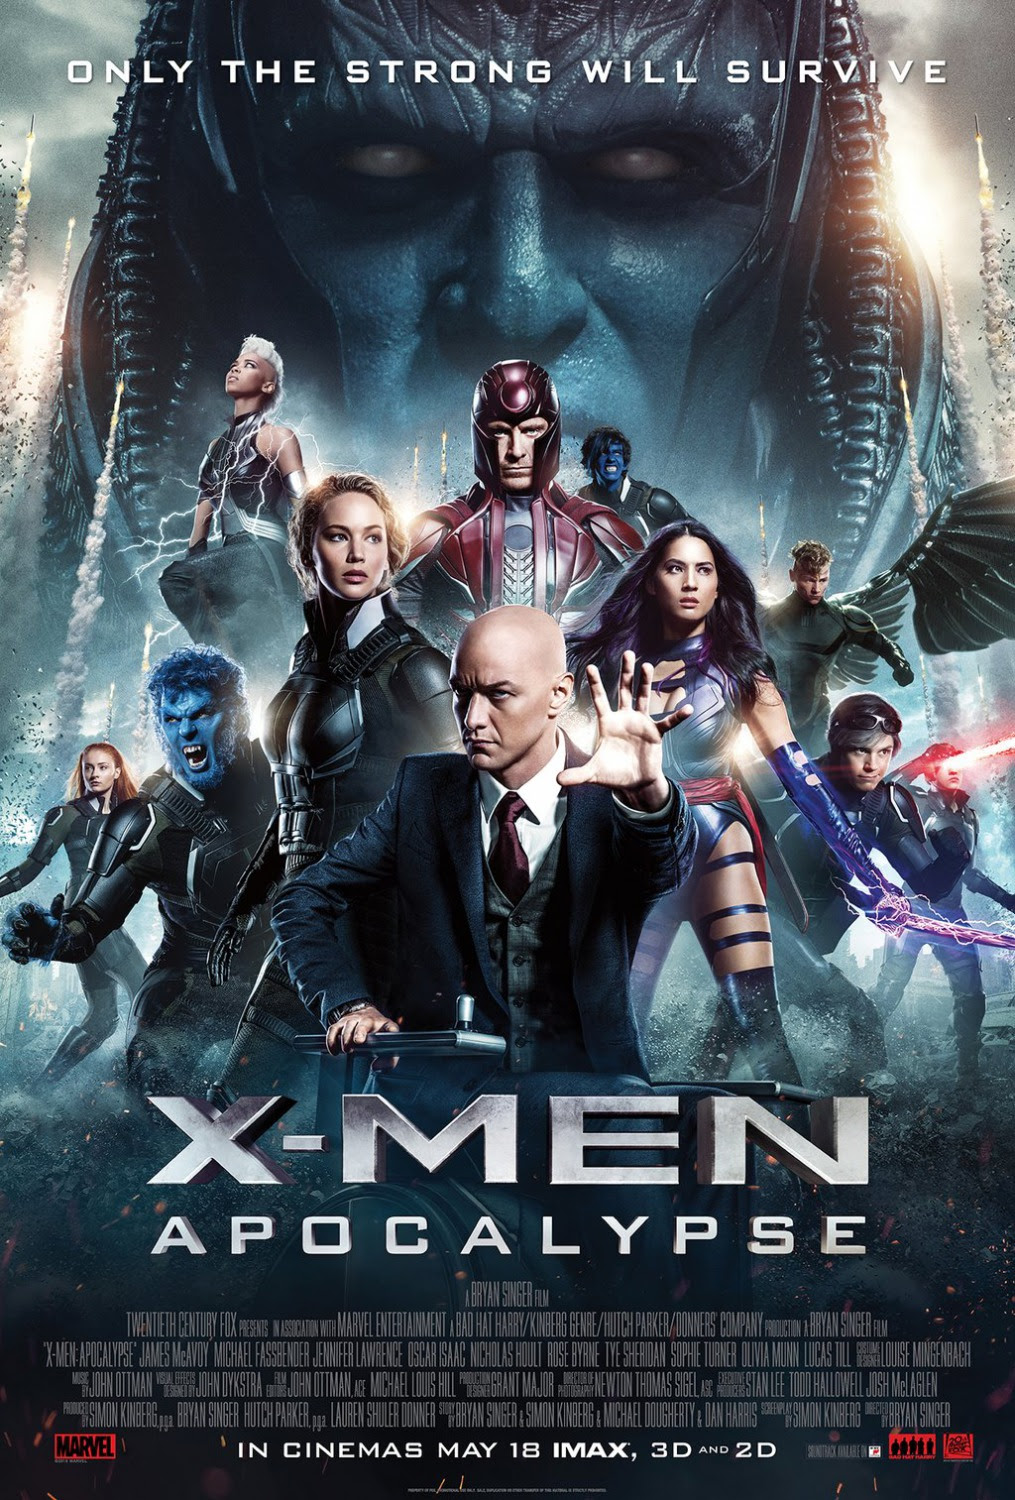 ... trailer on The Four Horsemen to X-Men: Apocalypse, which hits theaters